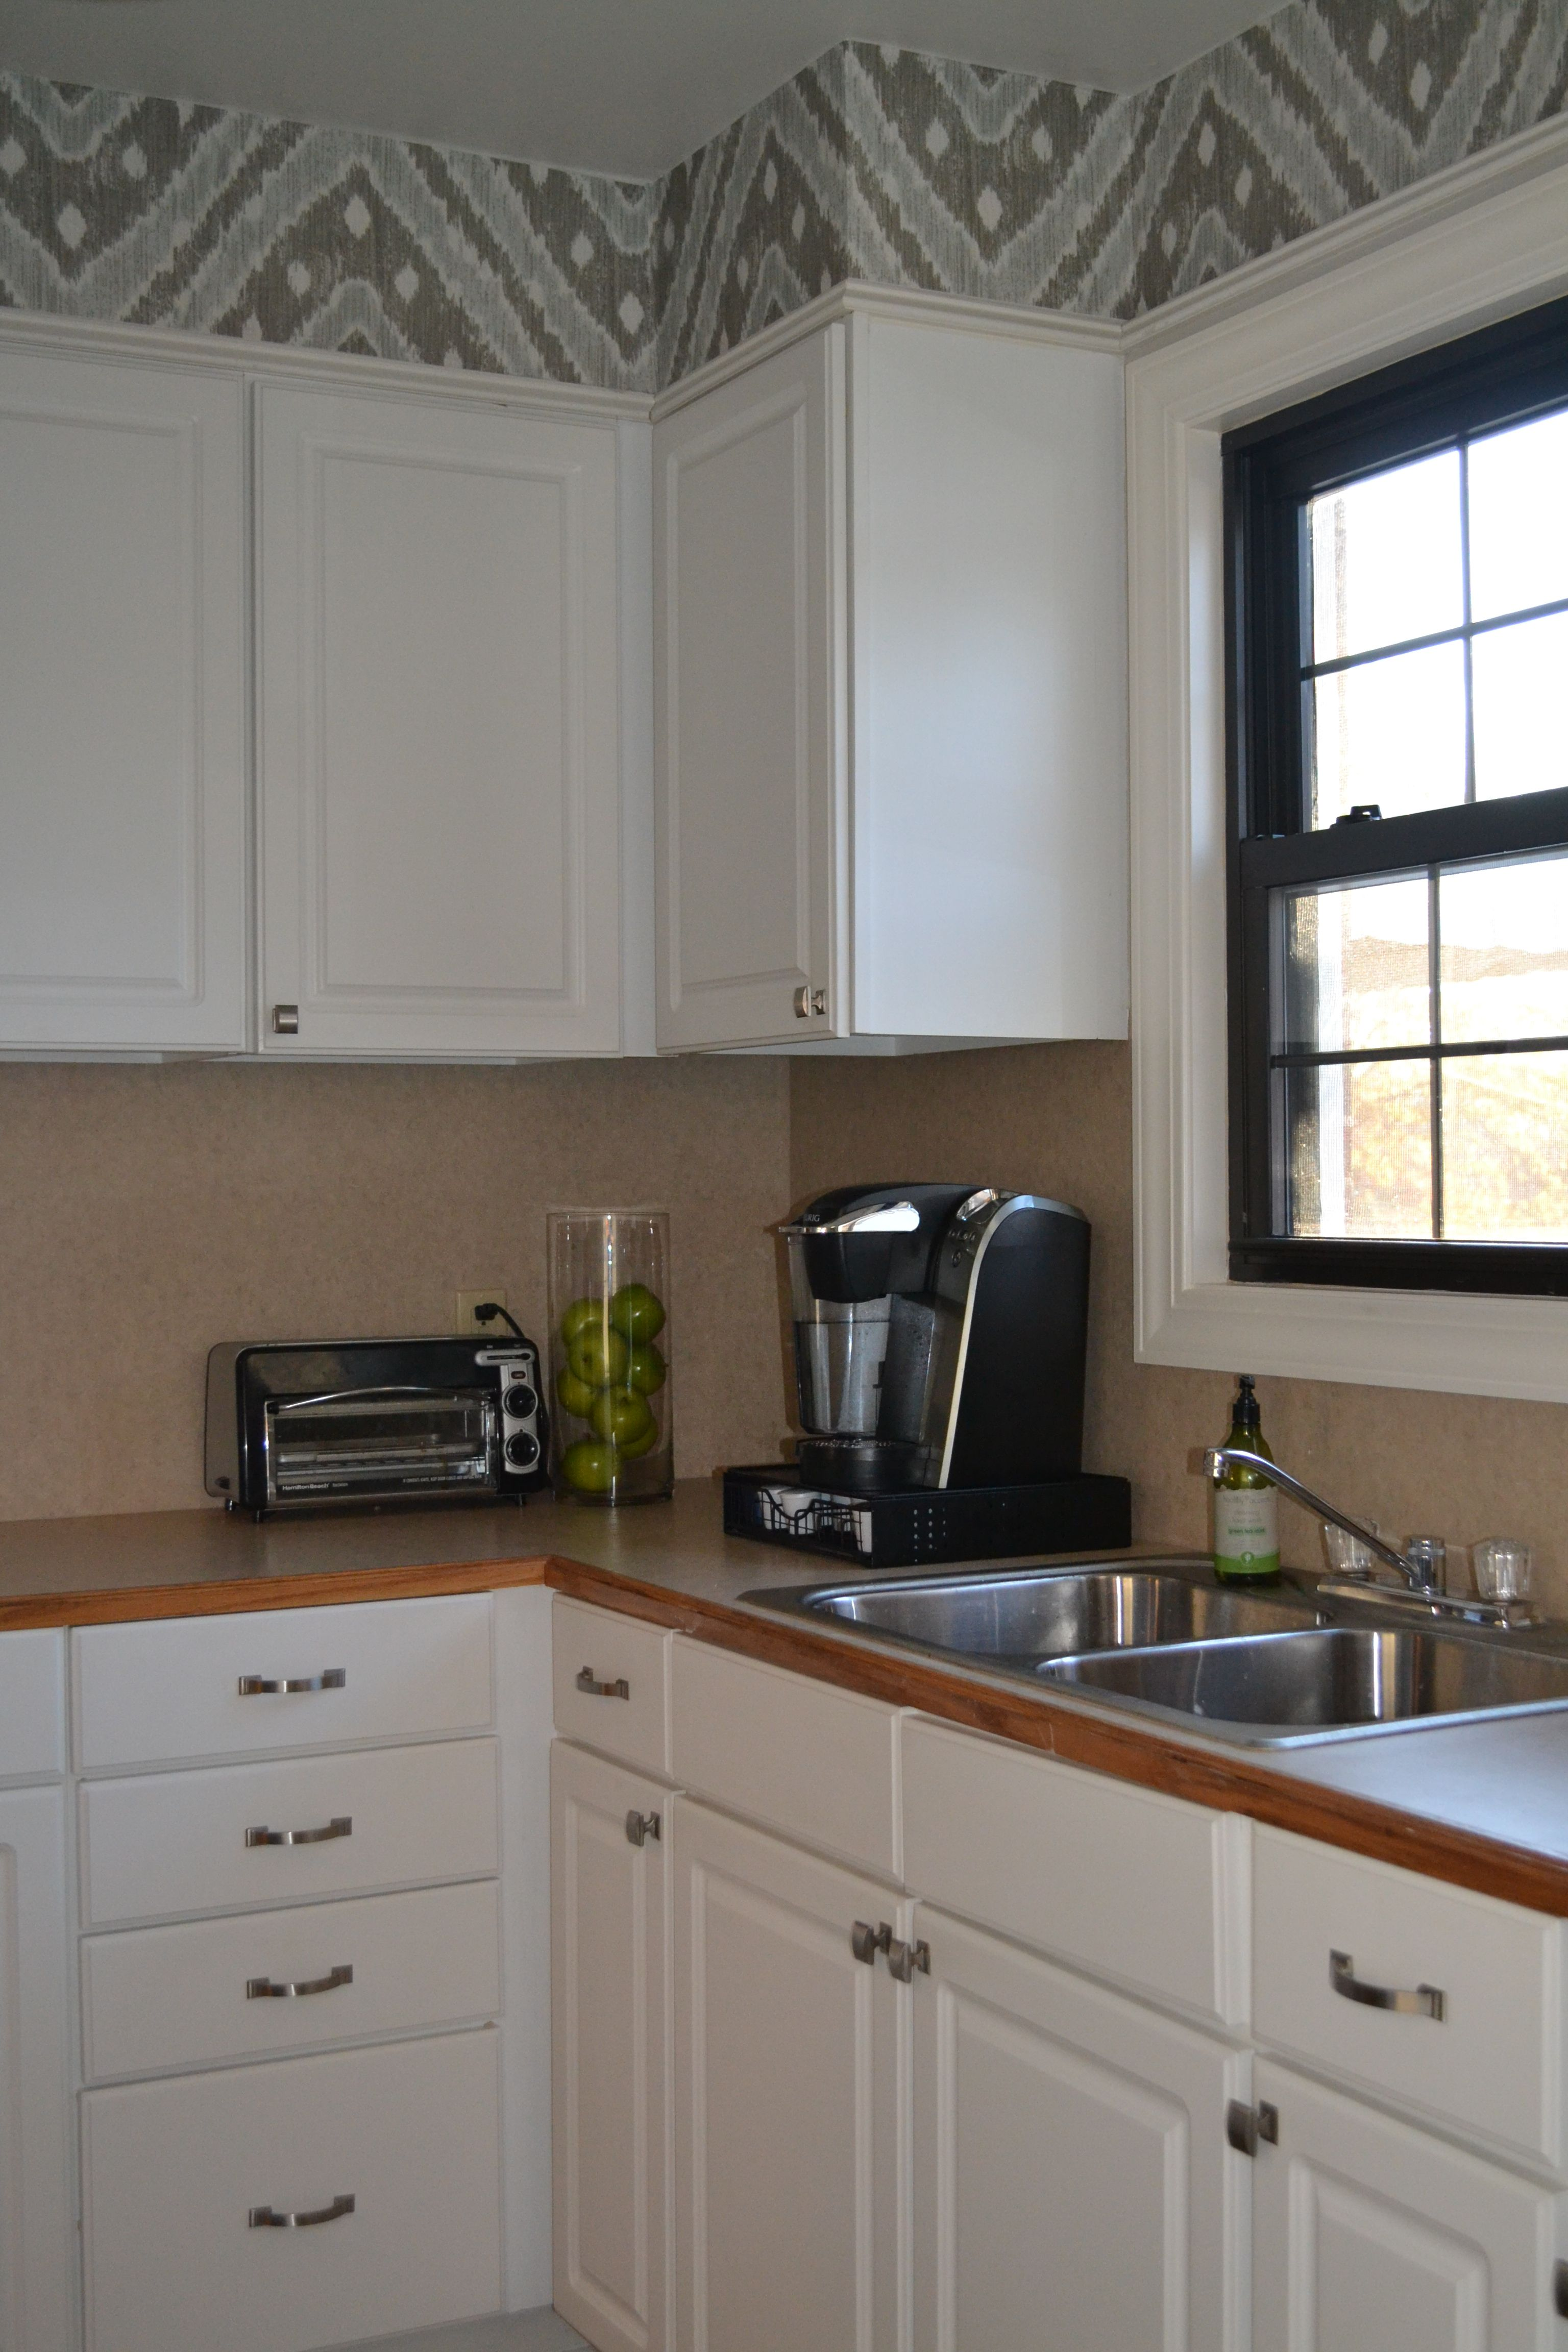 Wallpaper For Kitchen Walls Decorative Floor Mats Update Your With A Soffit And Its